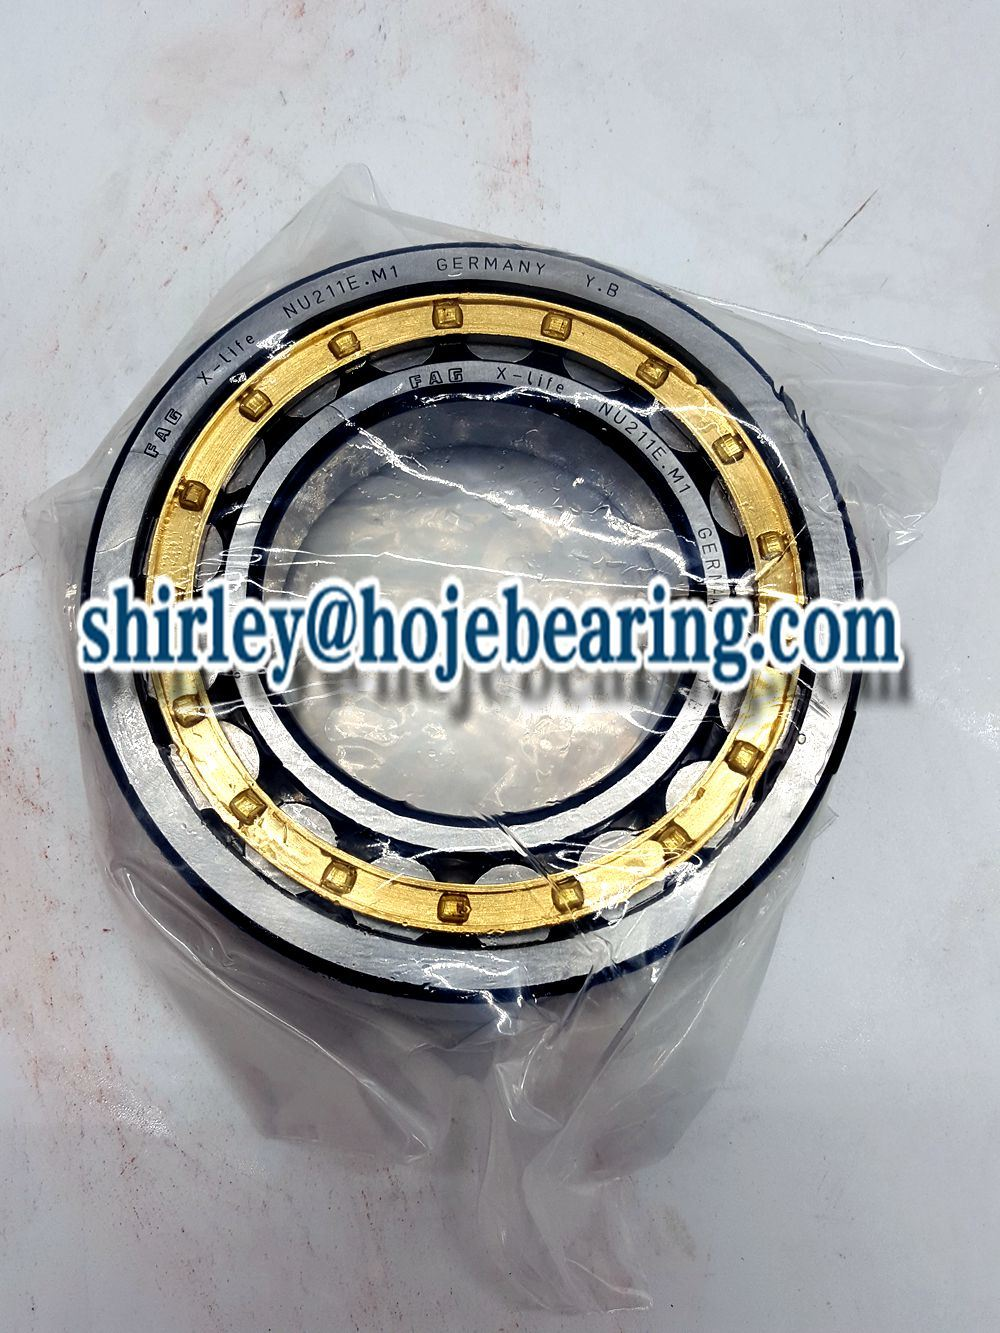 Flanged Automobile Cylindrical Roller Bearing Nup208 Nup2208 Nup308 Nup2308